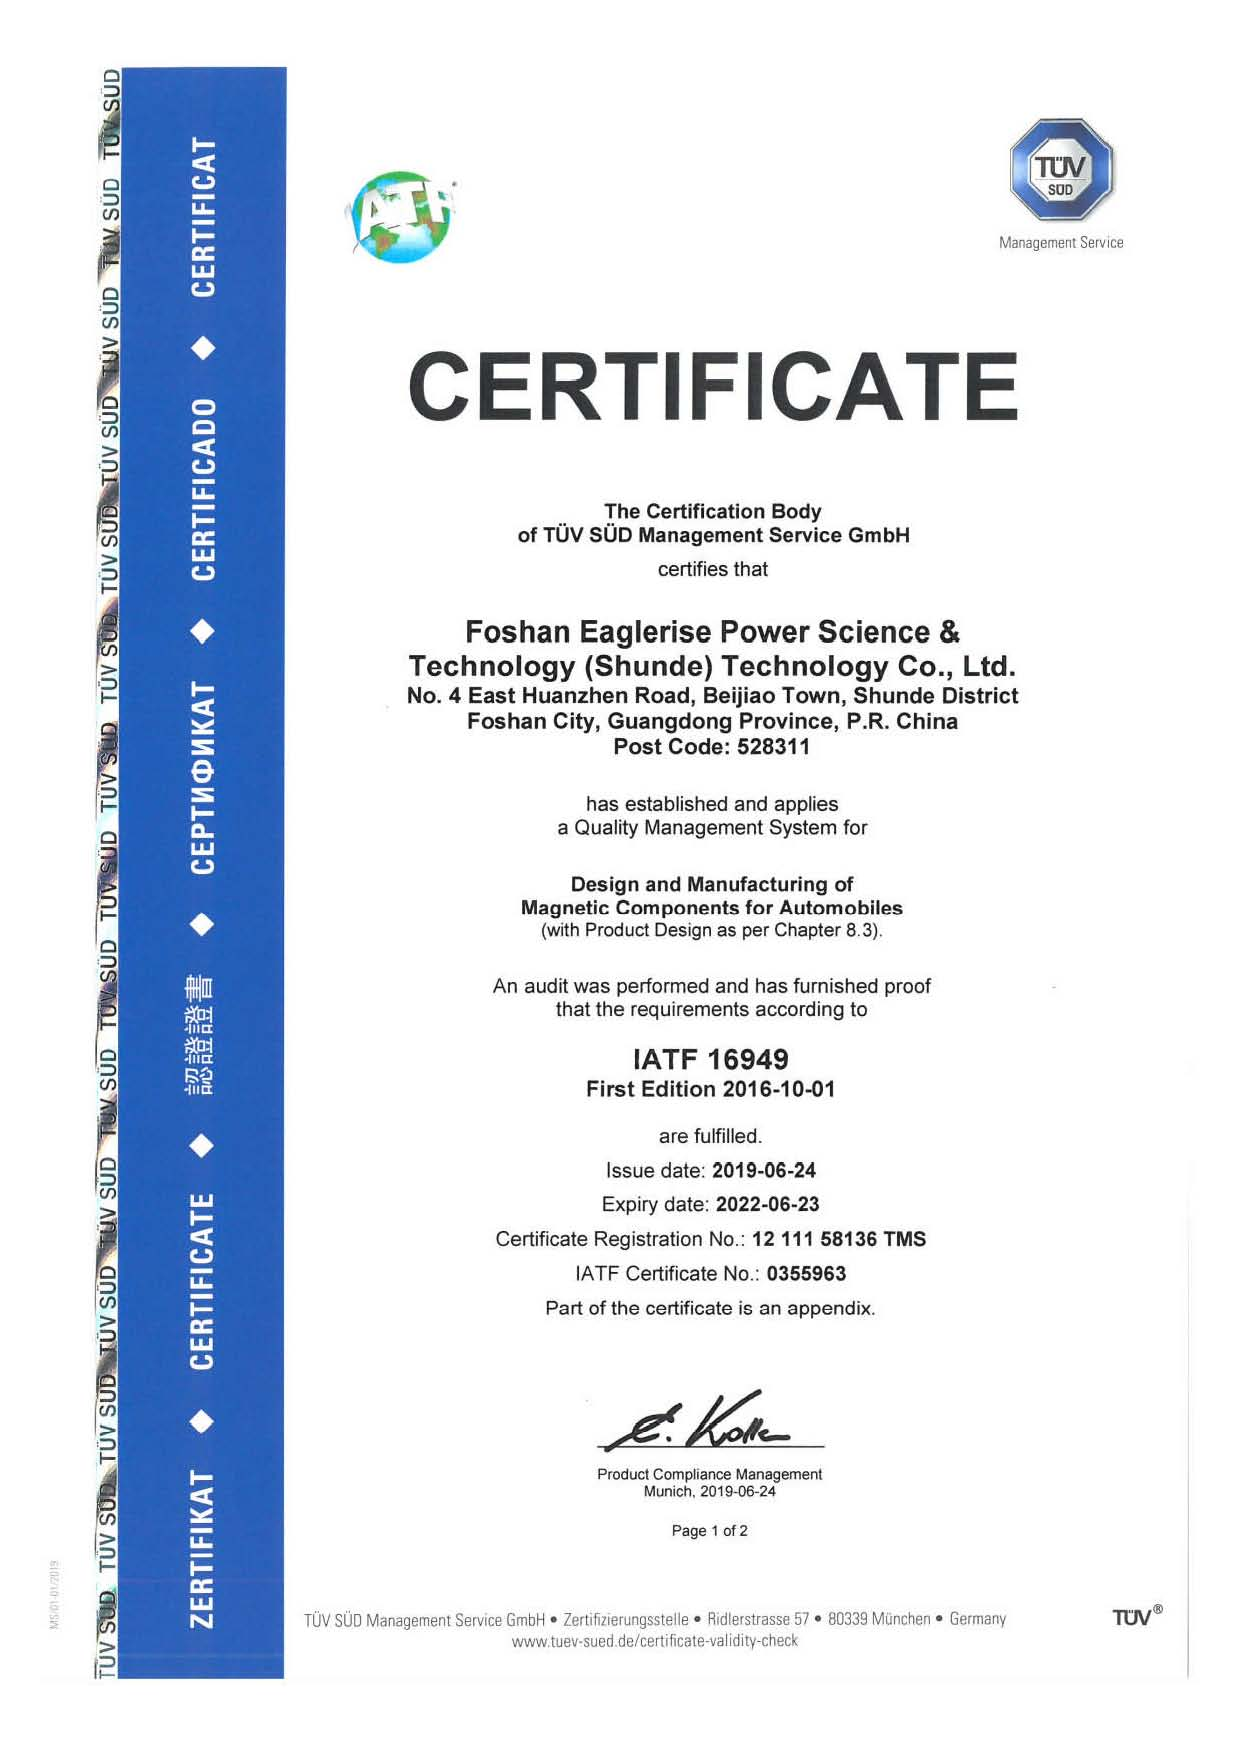 Eaglerise obtained IATF16949 certification